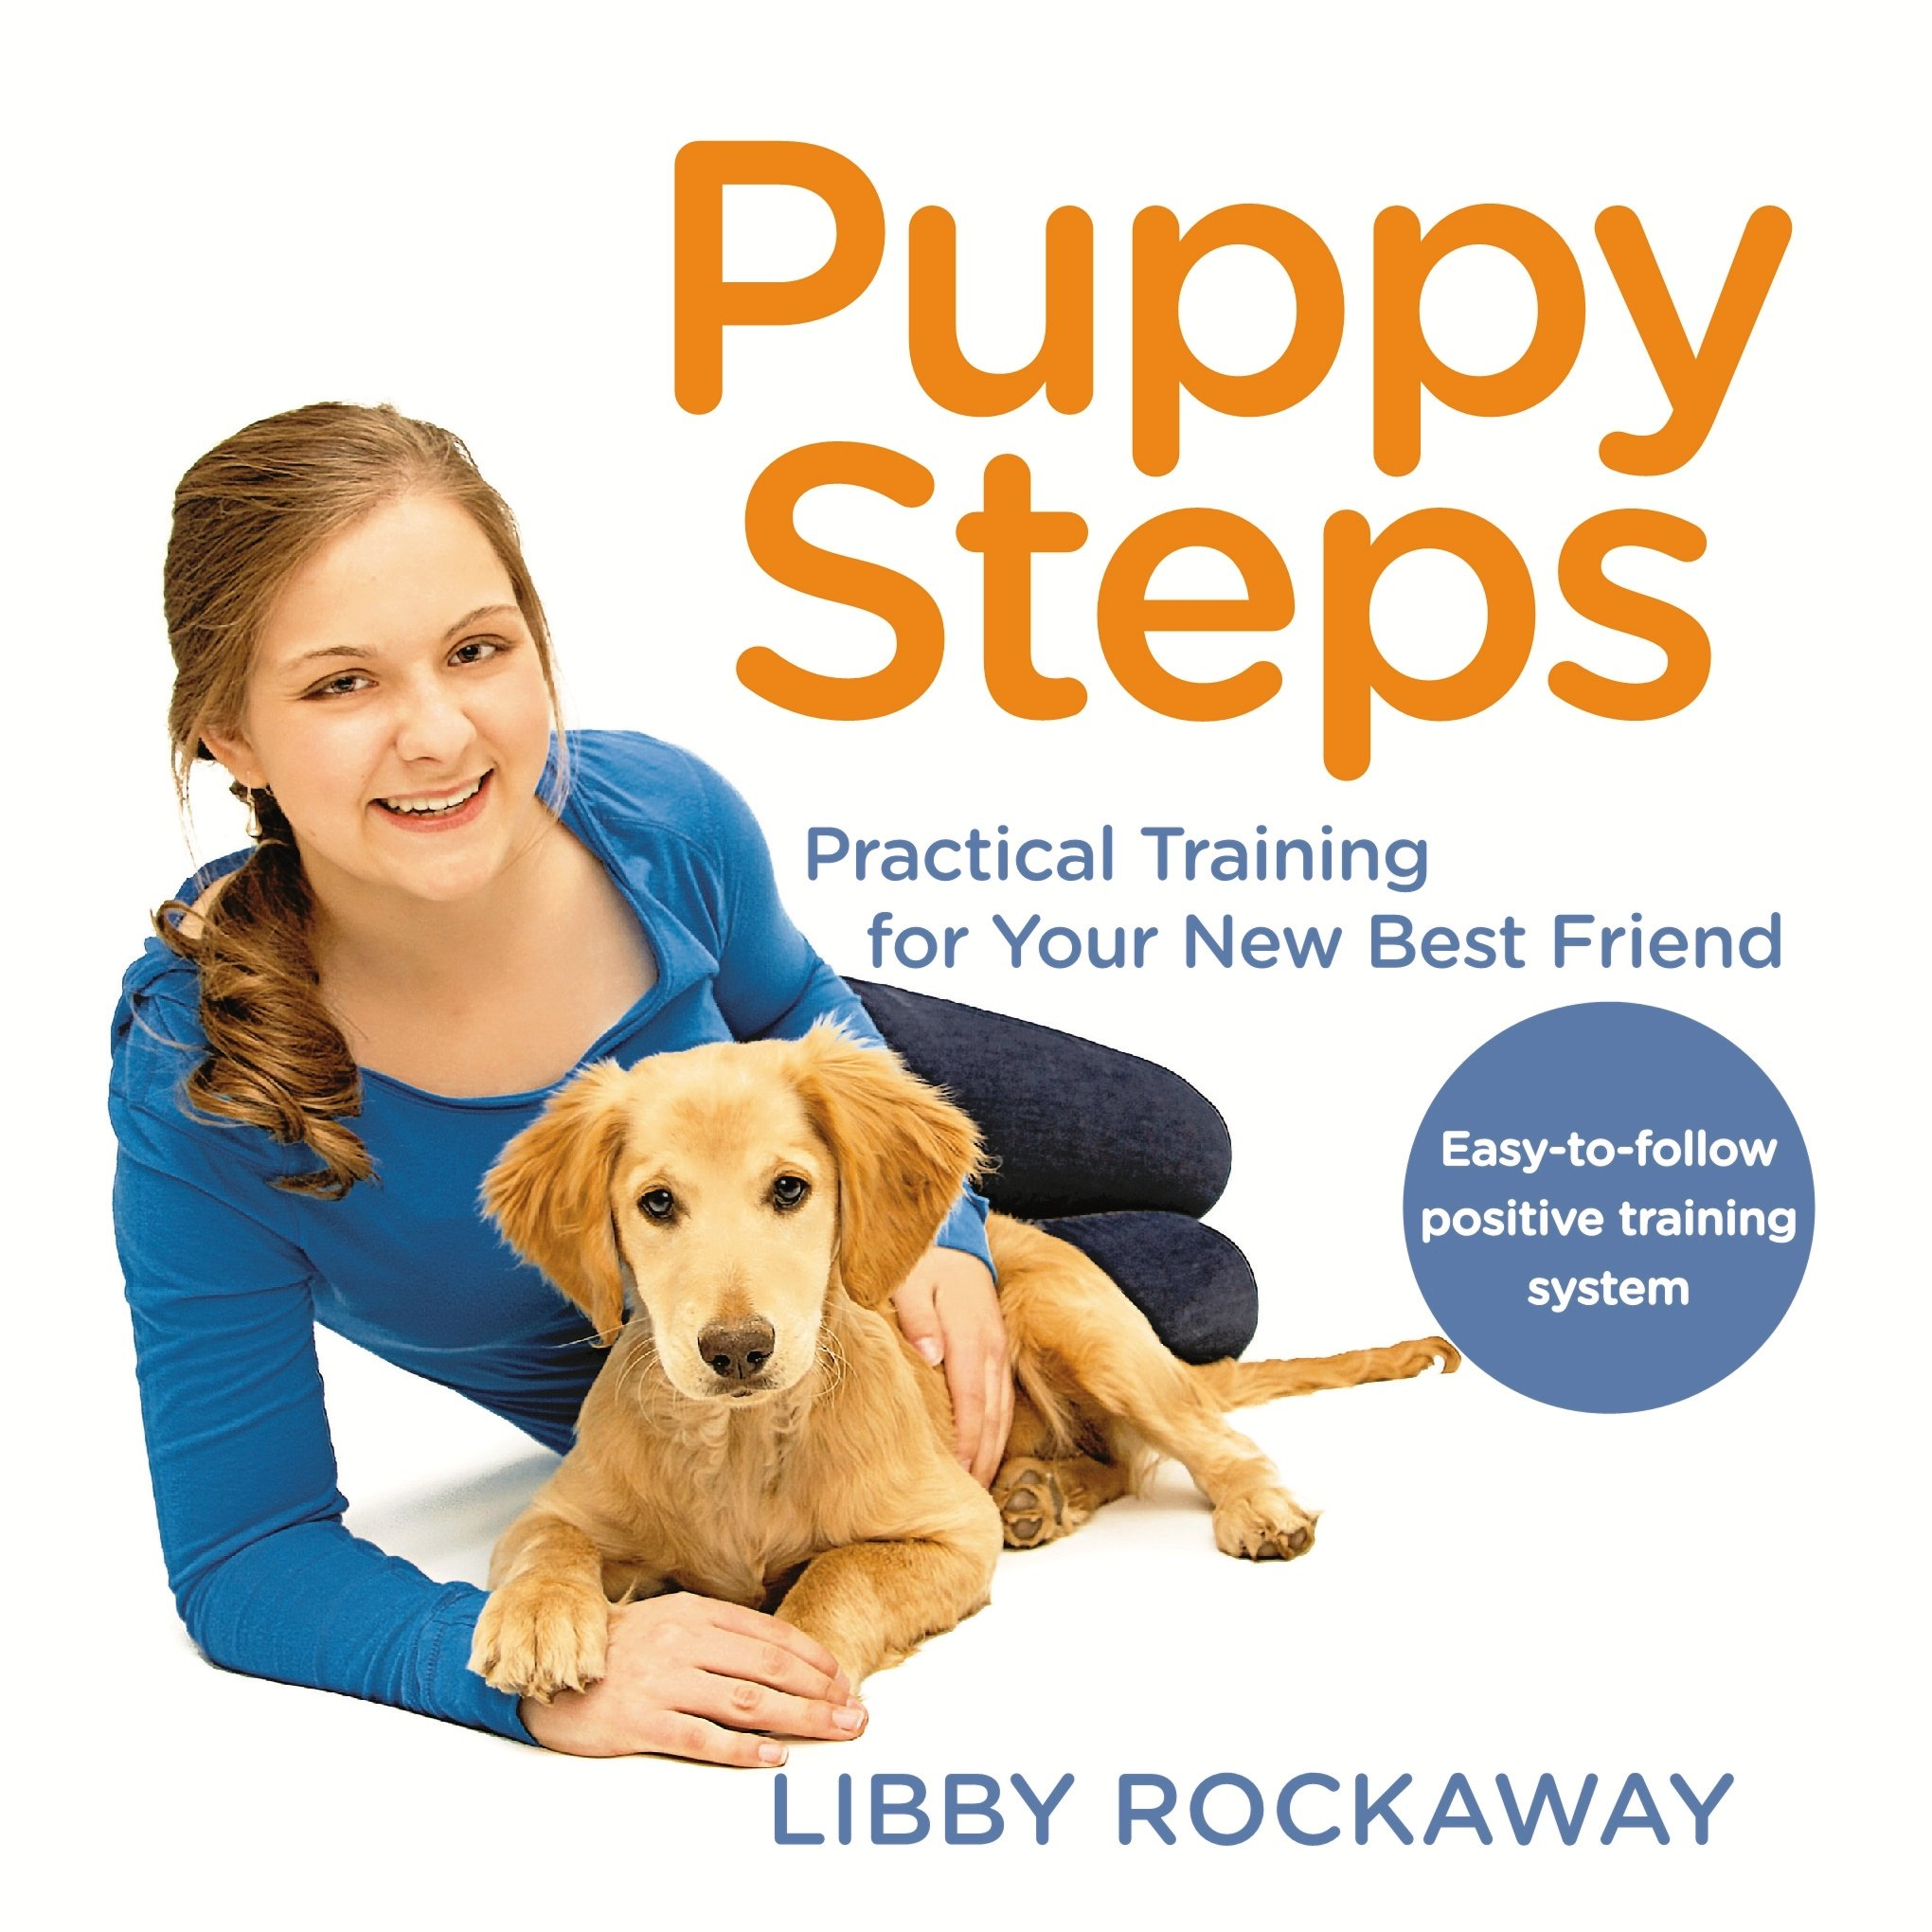 Puppy Steps Practical Training for Your New Best Friend Libby